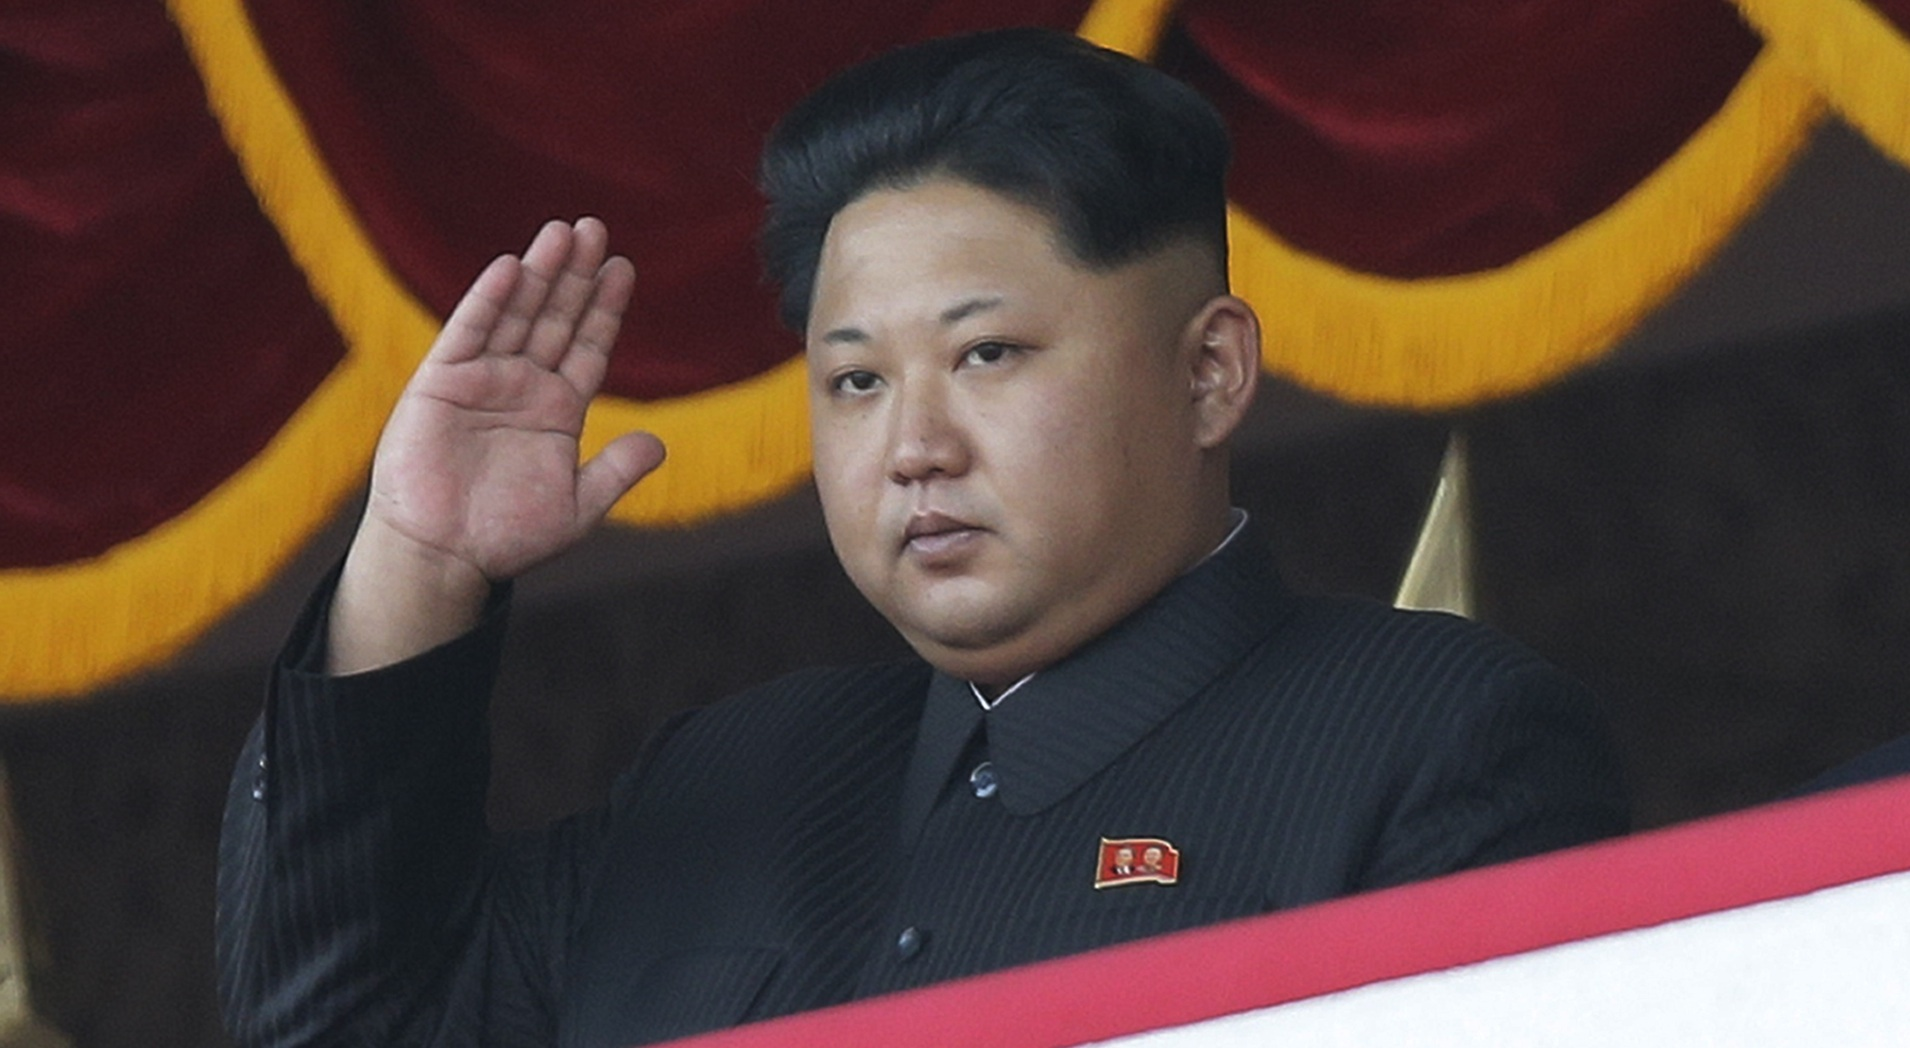 Kim Jong Un: North Korea ready for 'any kind of war' against U.S.